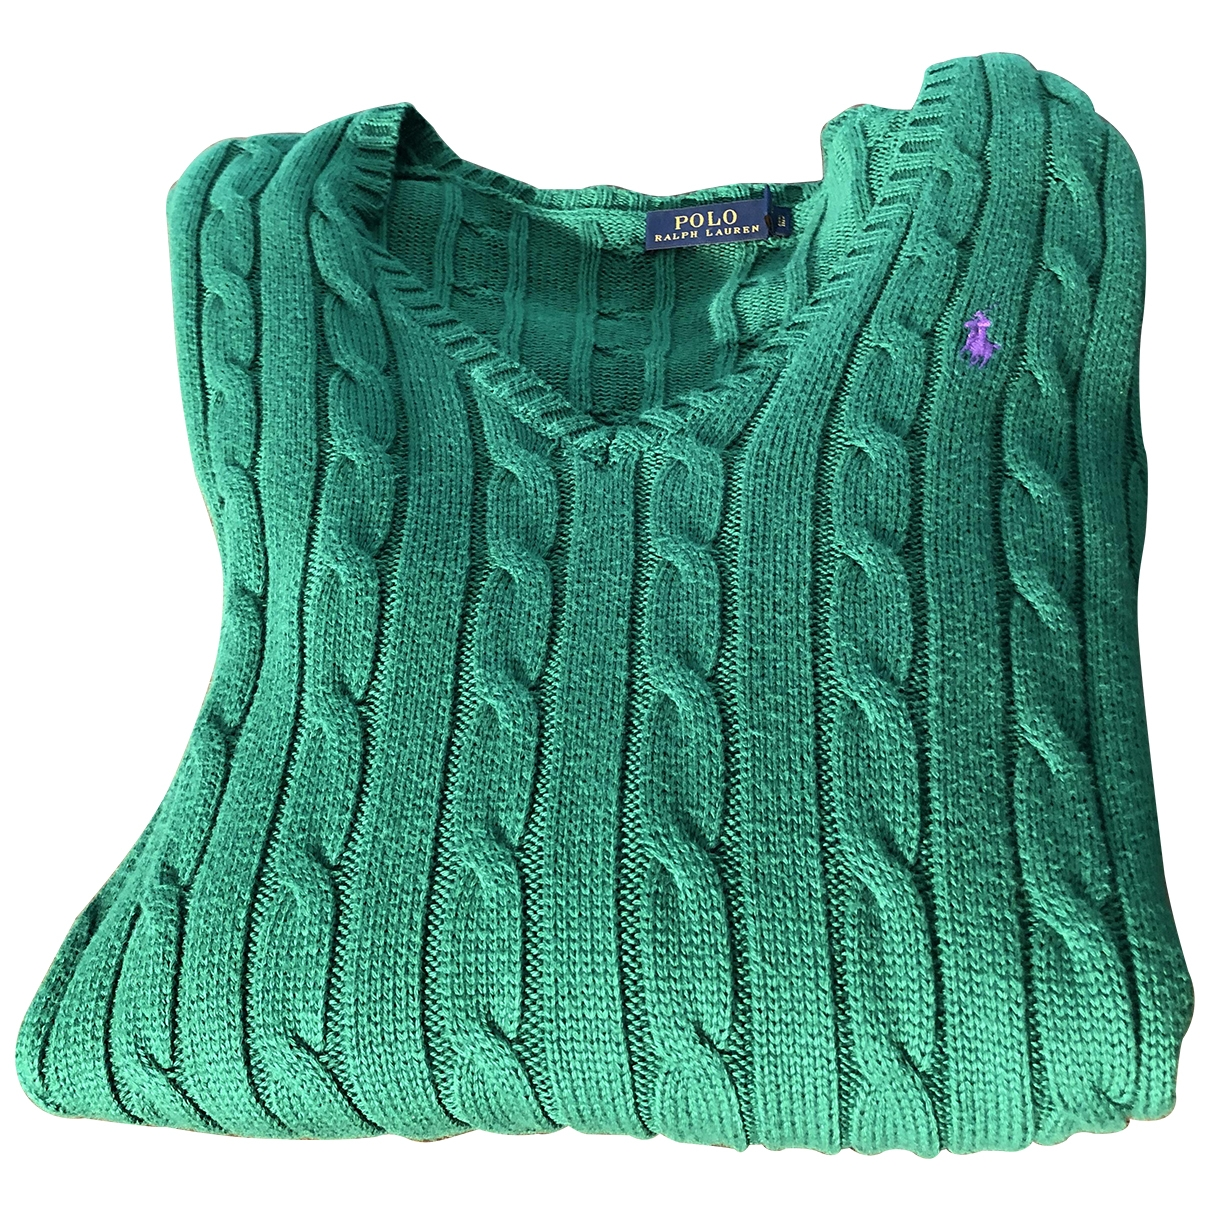 Polo Ralph Lauren \N Green Cotton Knitwear for Women L International